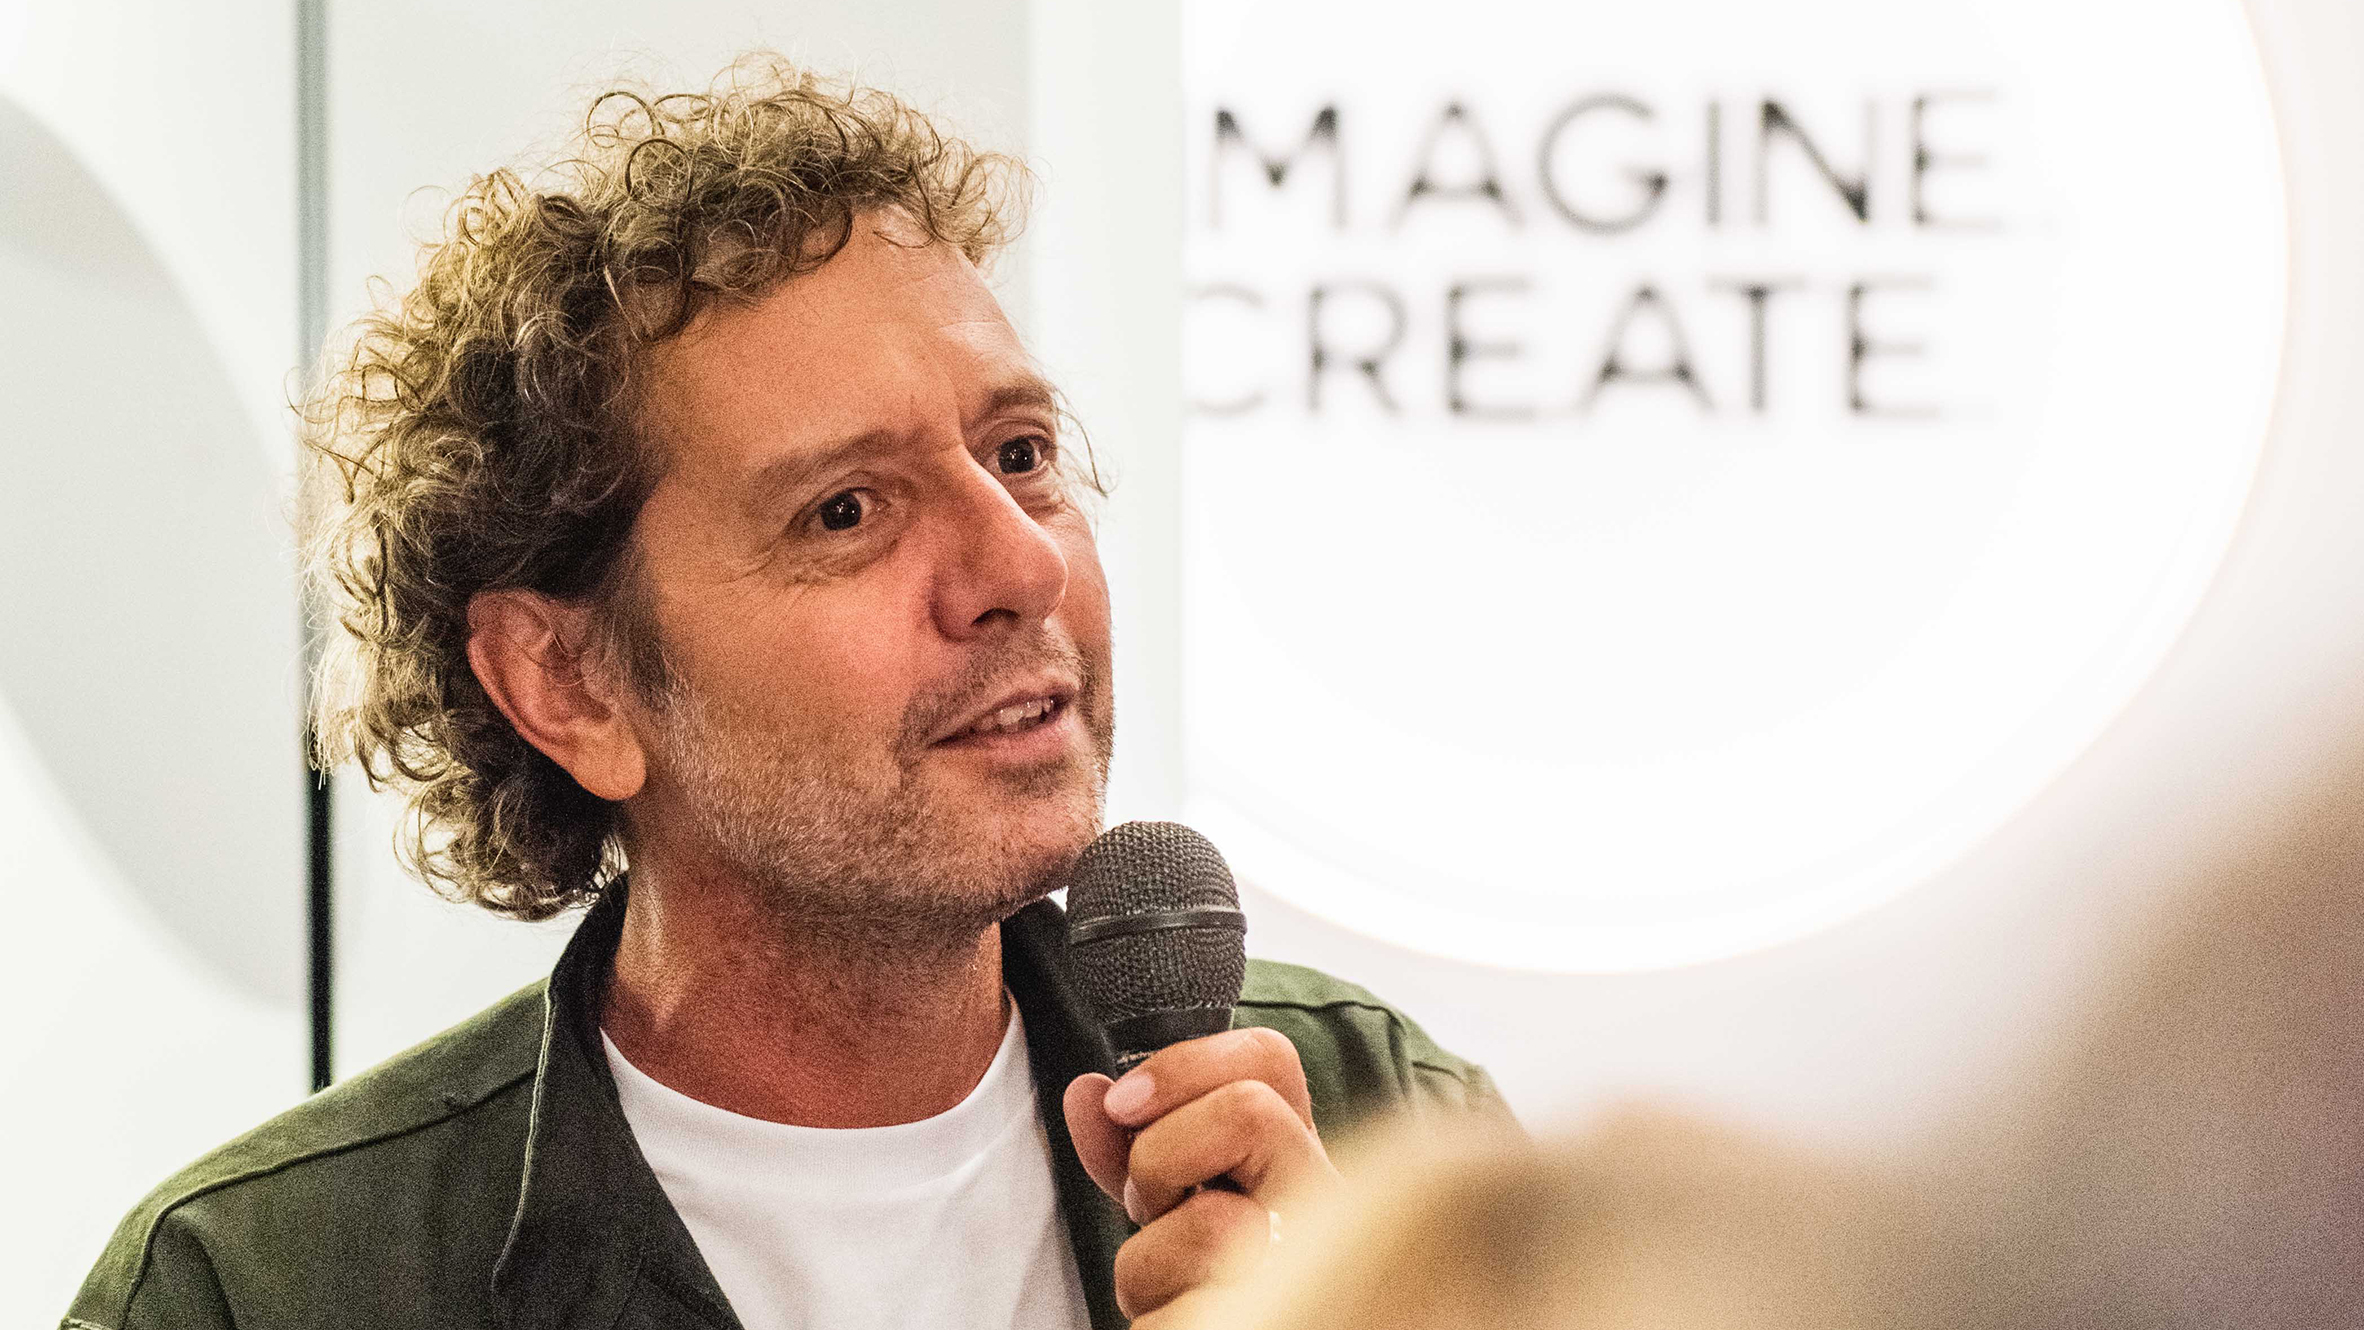 Marcus Fairs, founder and editor-in-chief of Dezeen